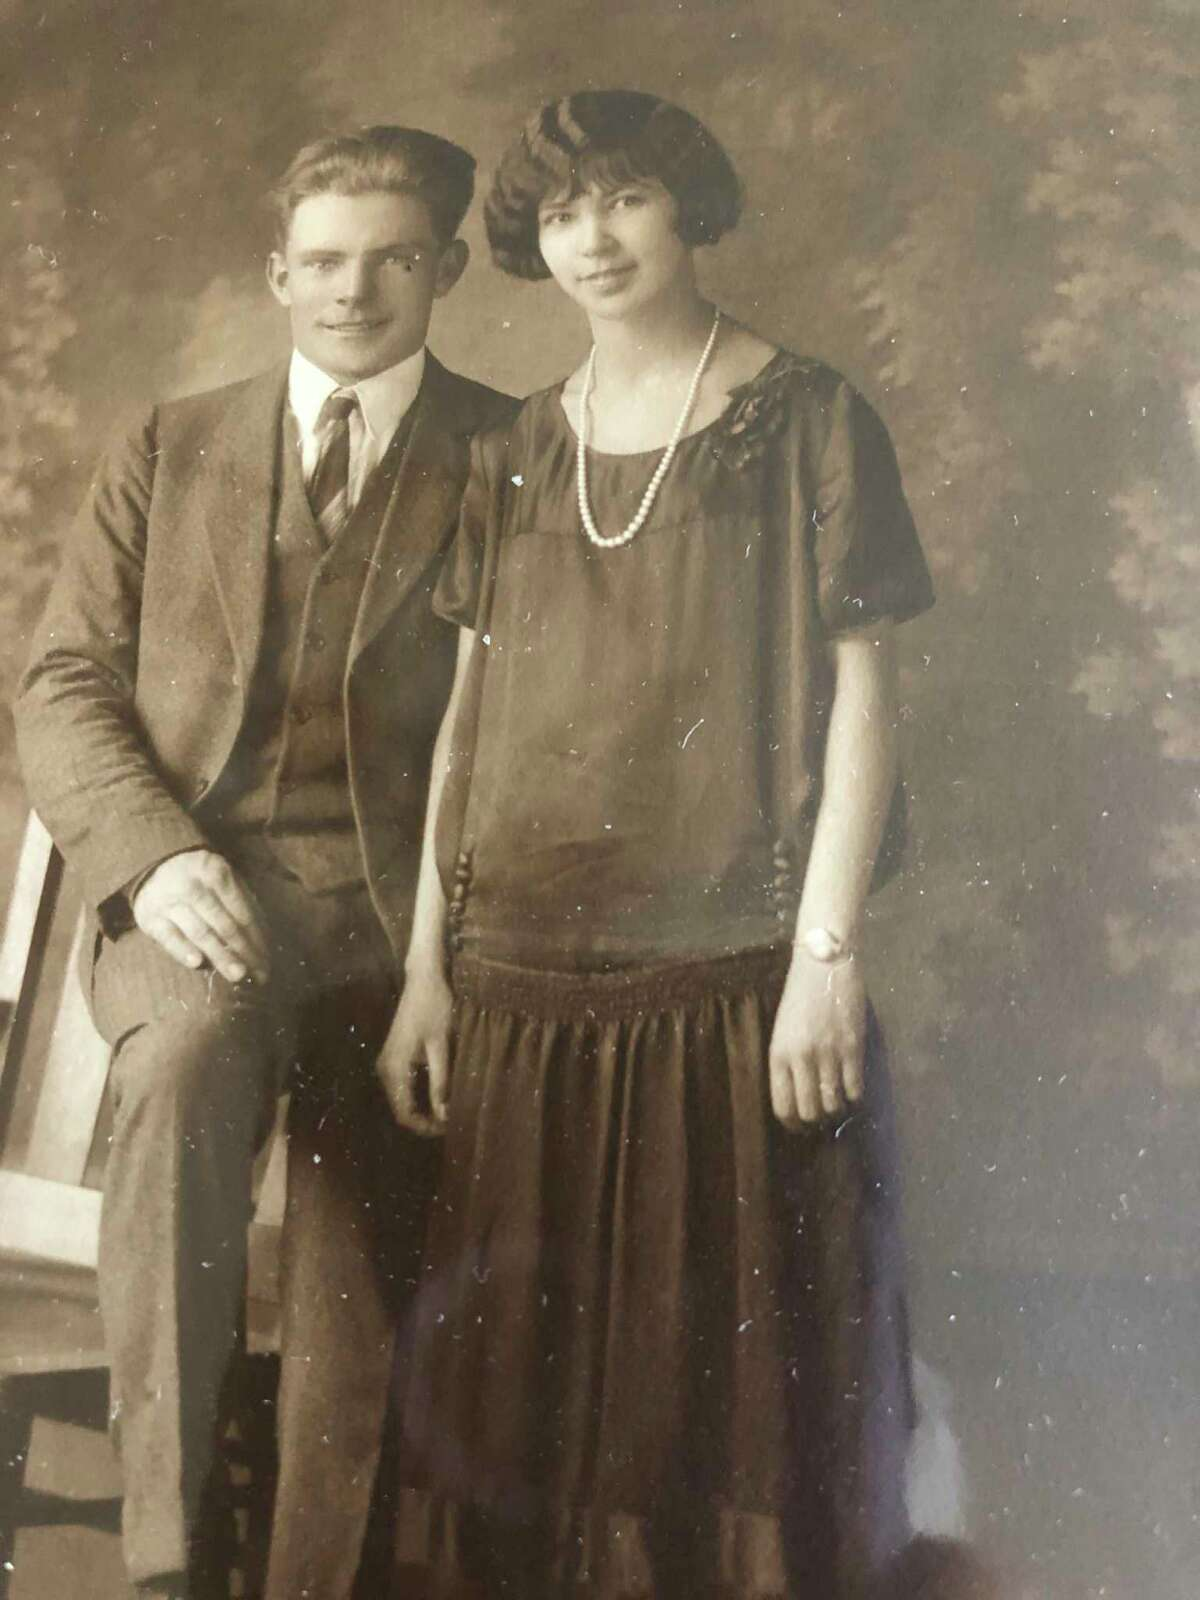 This is Frank Clark and Nellie DeJongh on their wedding day in 1925. Leona remembers lying in bed at night, falling asleep listening to her dad playing the guitar and singing. Frank's musical abilities have been passed on to his daughter, grandchildren and great-grandchildren. (Photo provided)